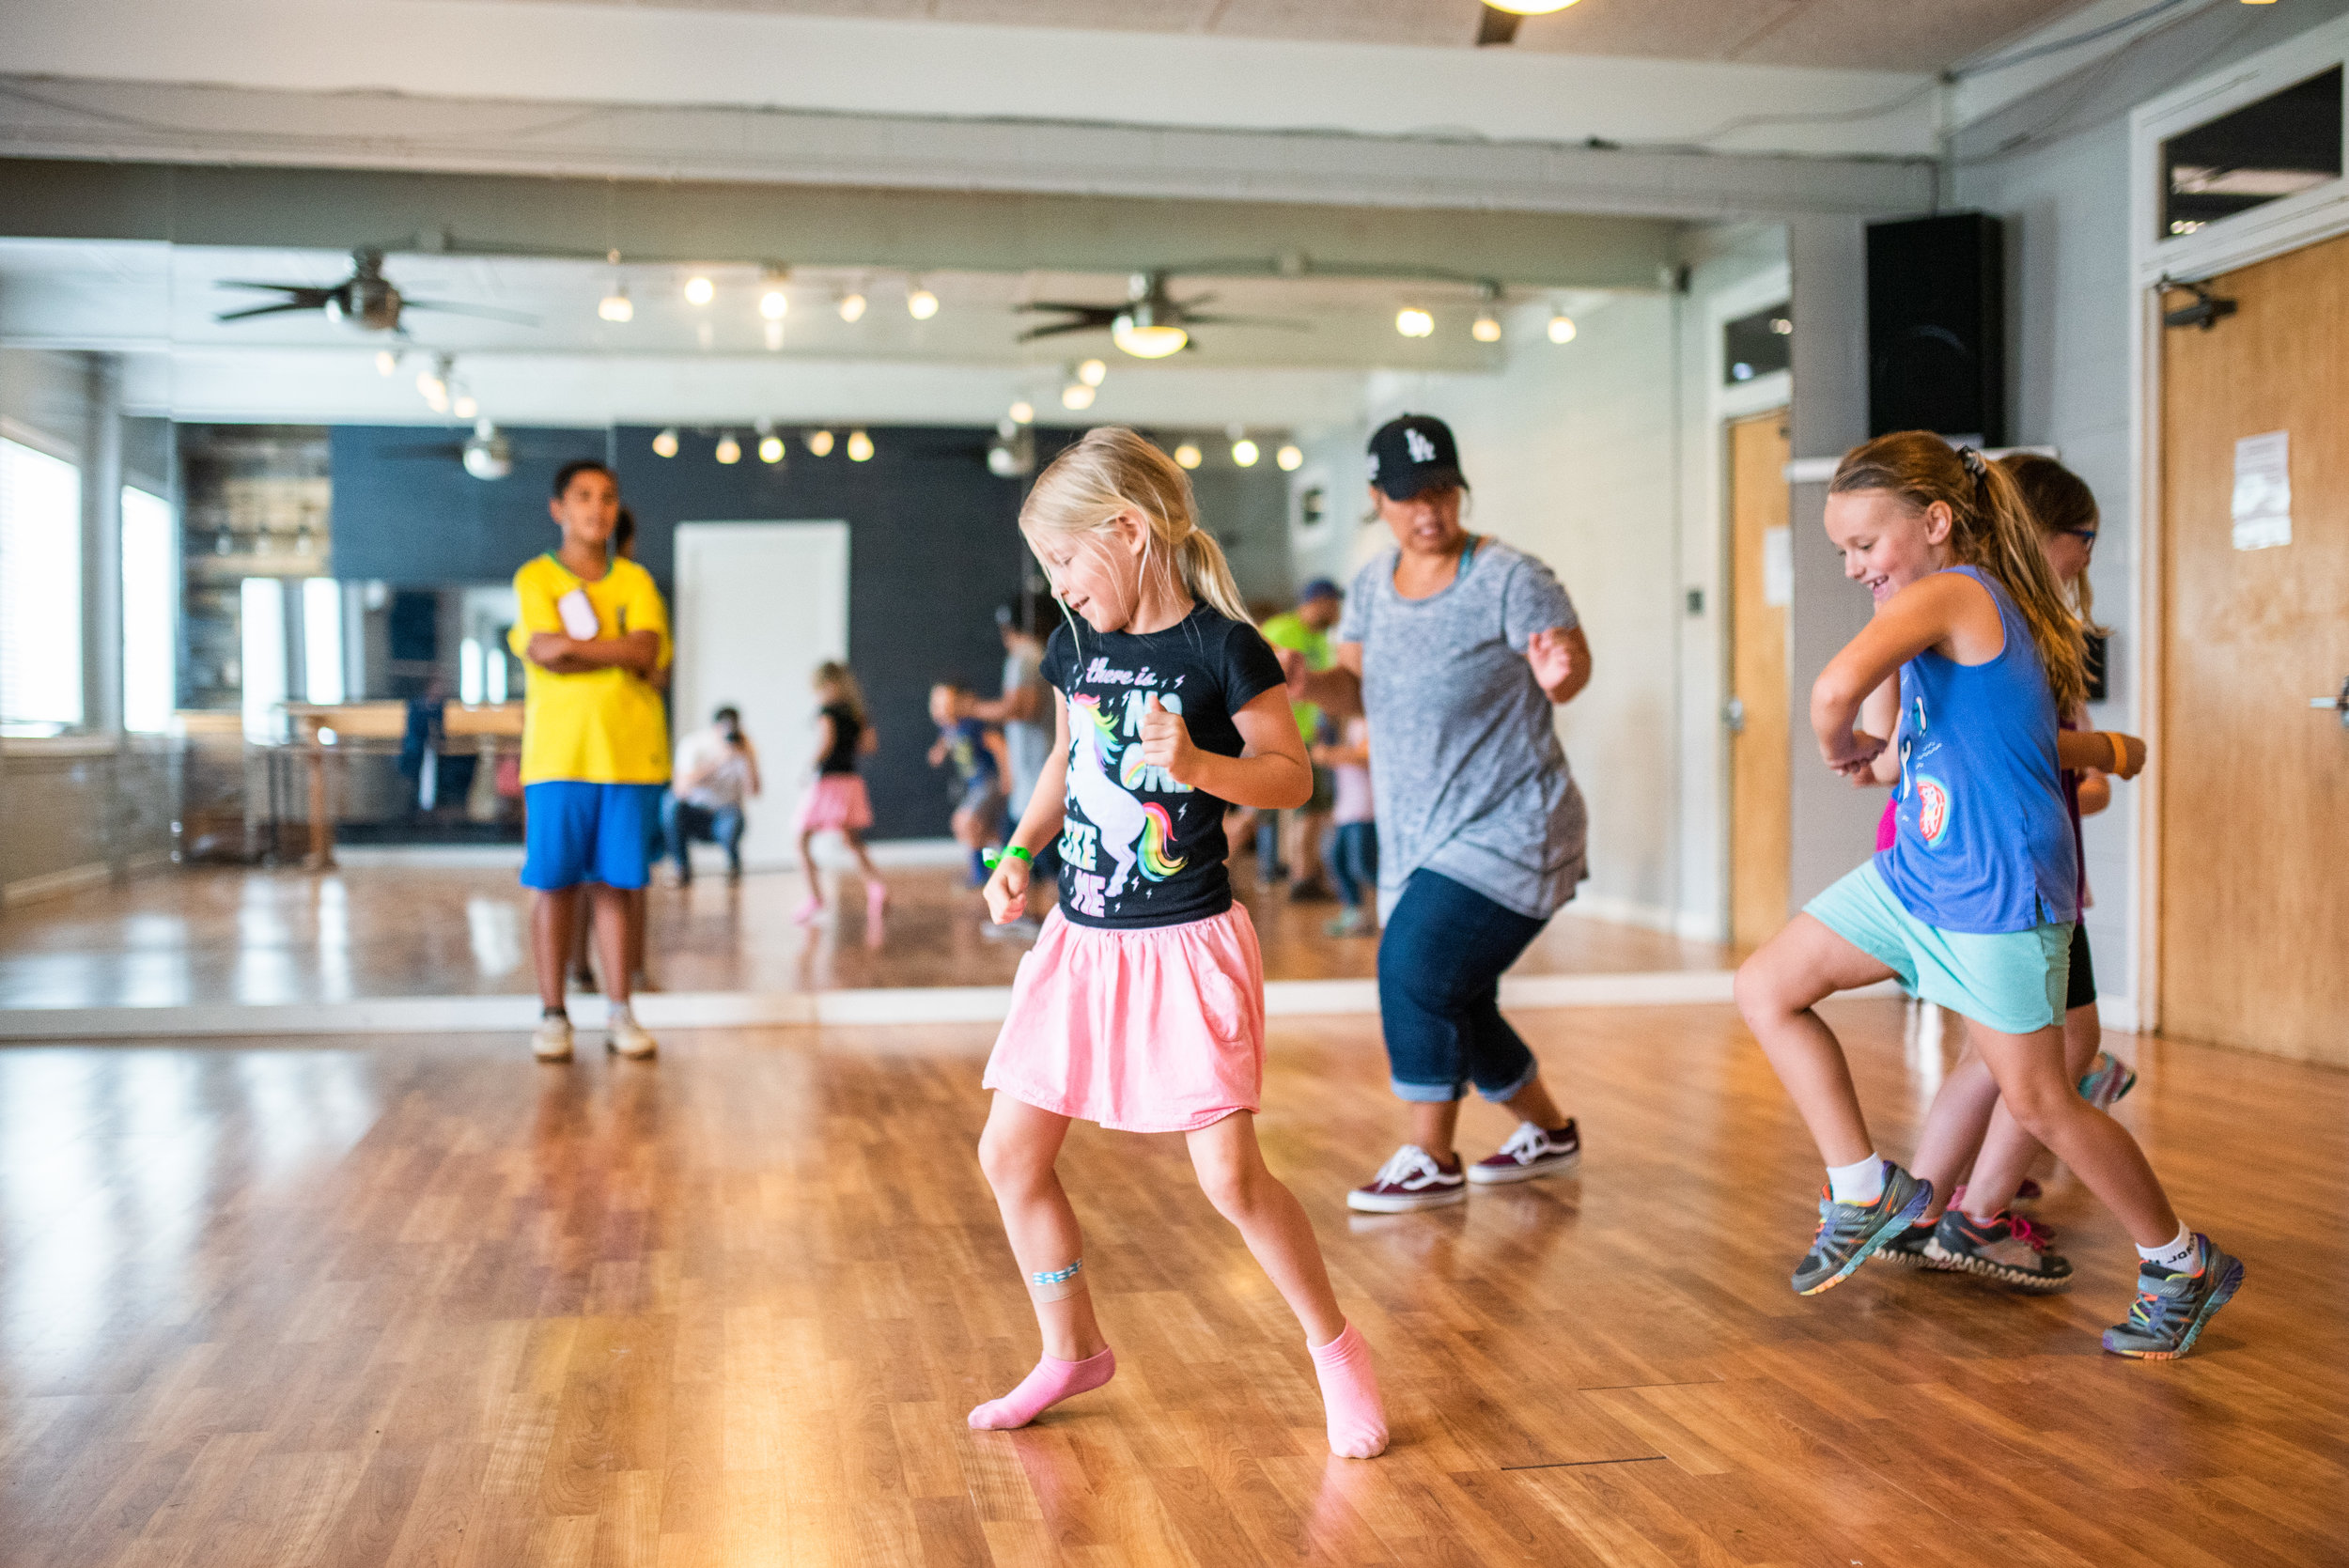 Trinity Garner leads a hip hop dance workshop with campers. Movement of the body in connection with your soul is a healthy practice for everyone.